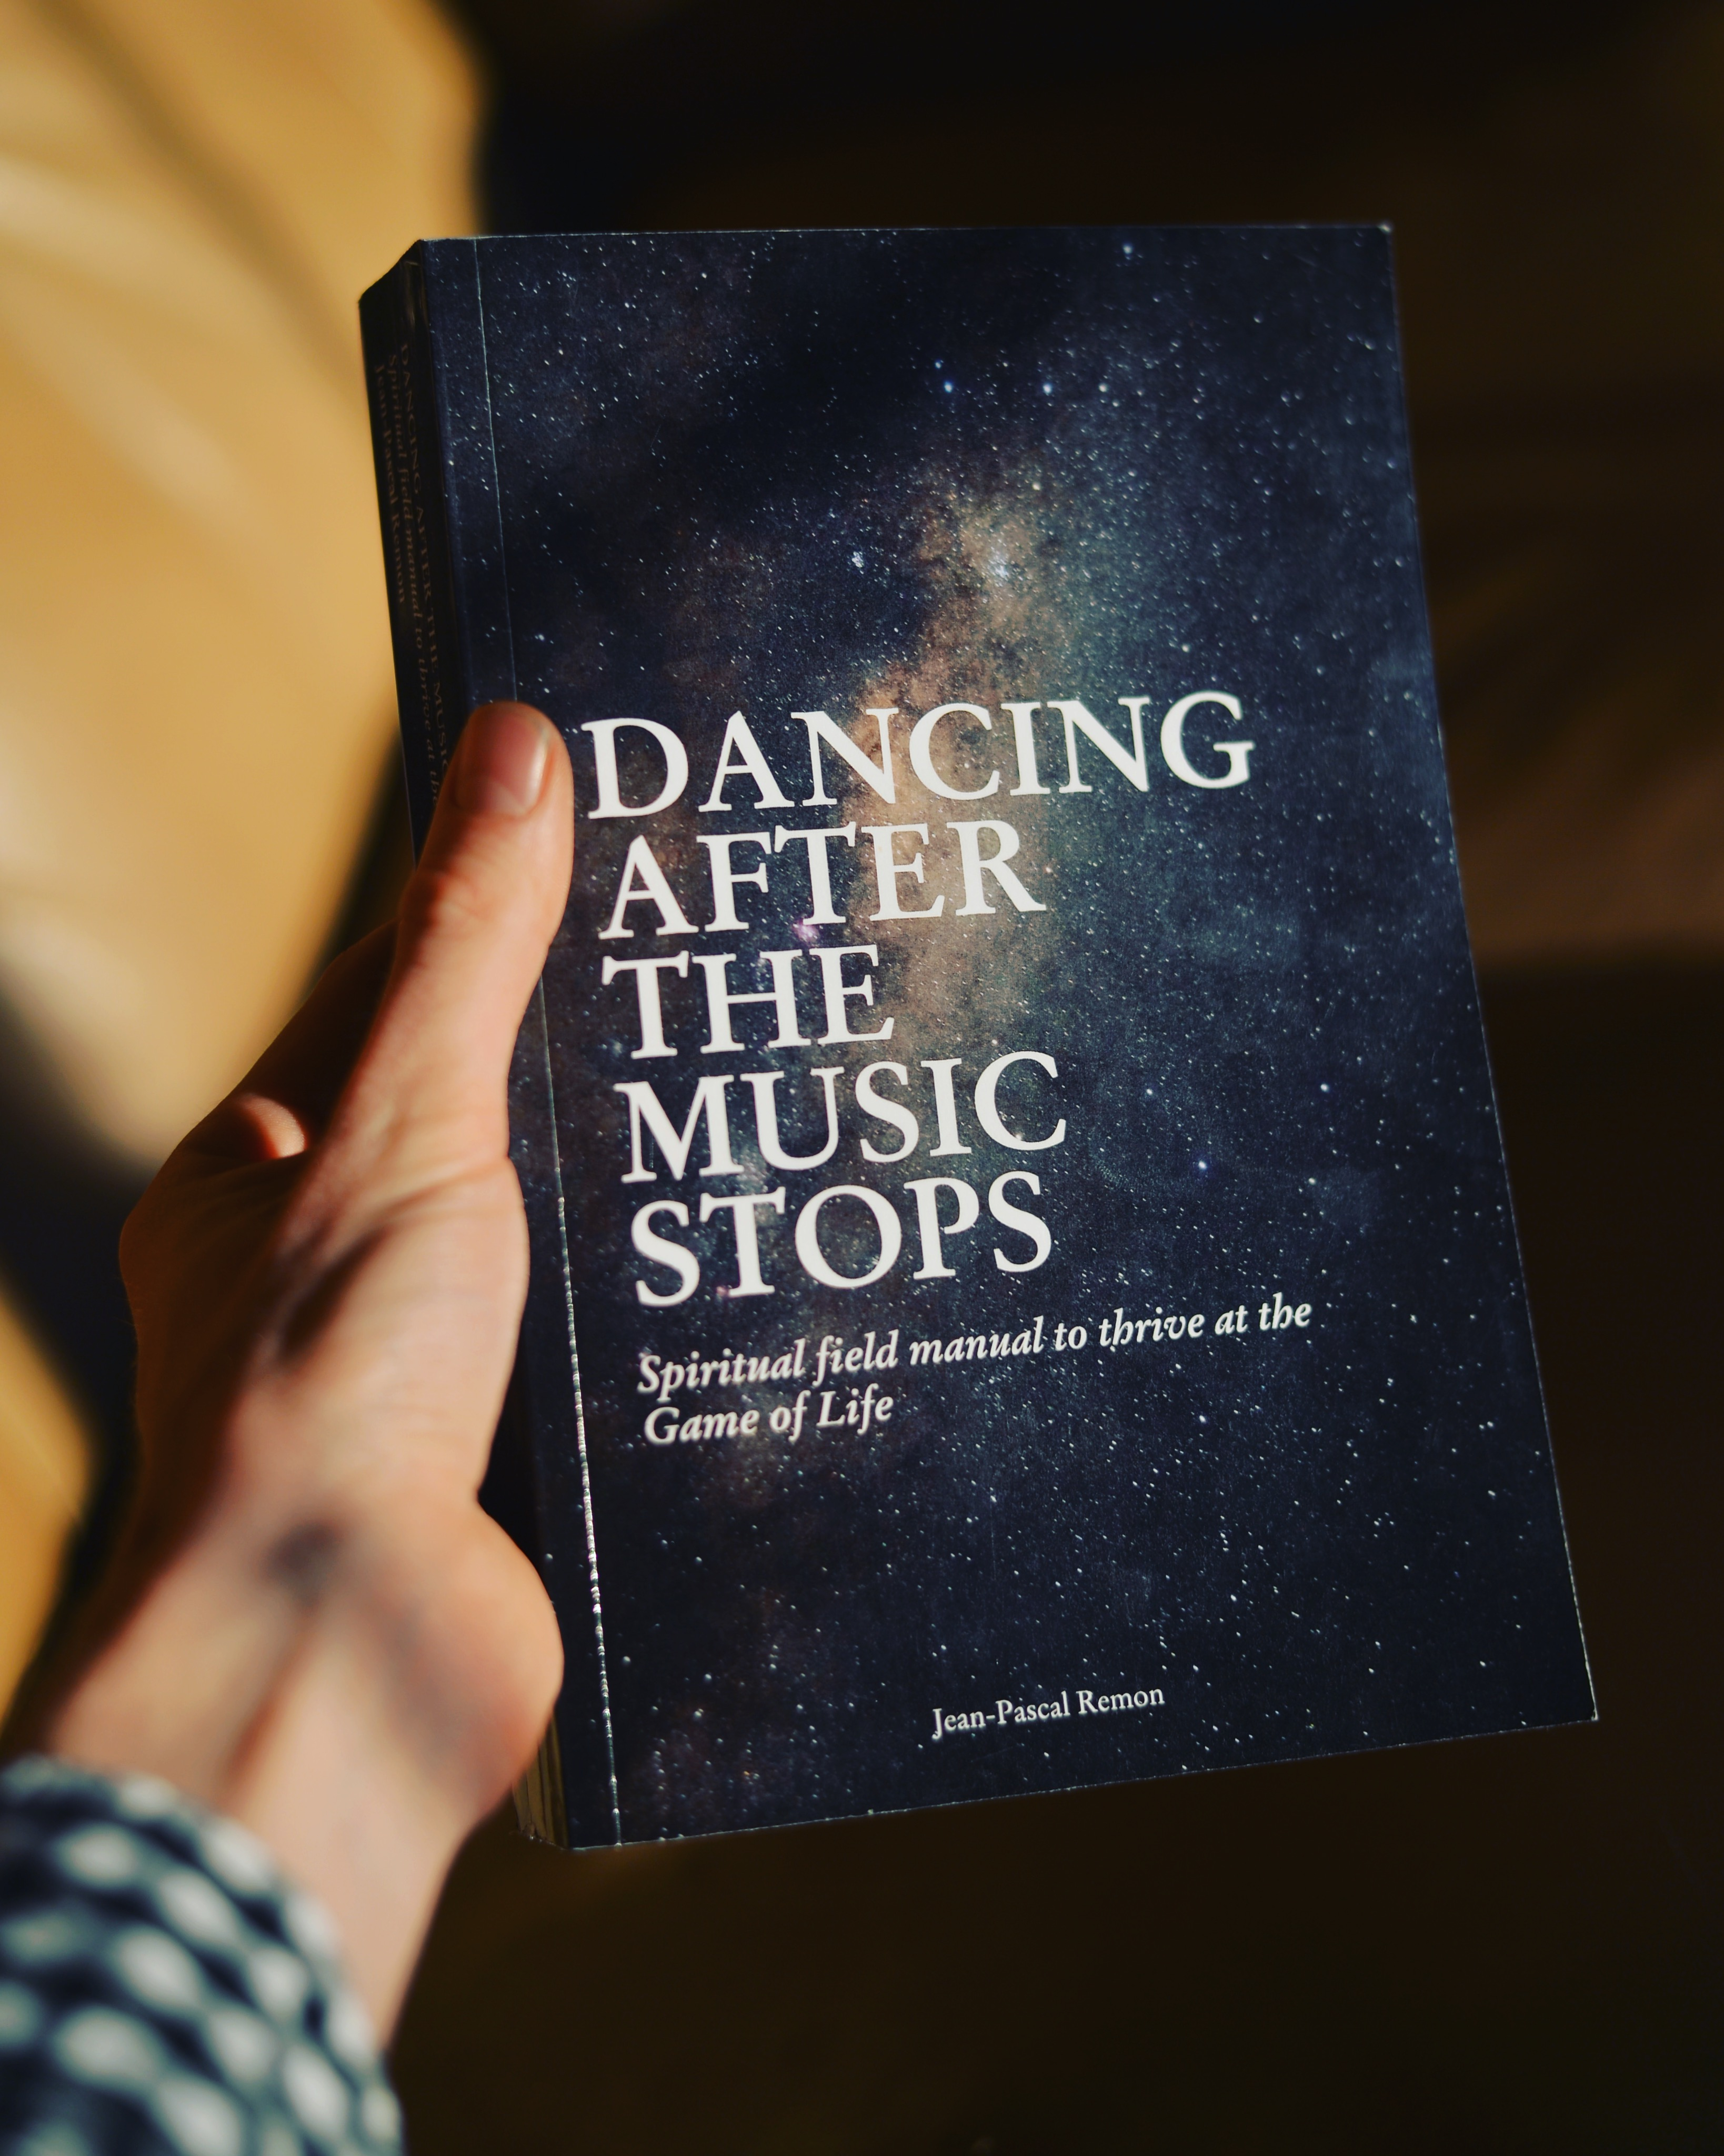 After the music stops book cover